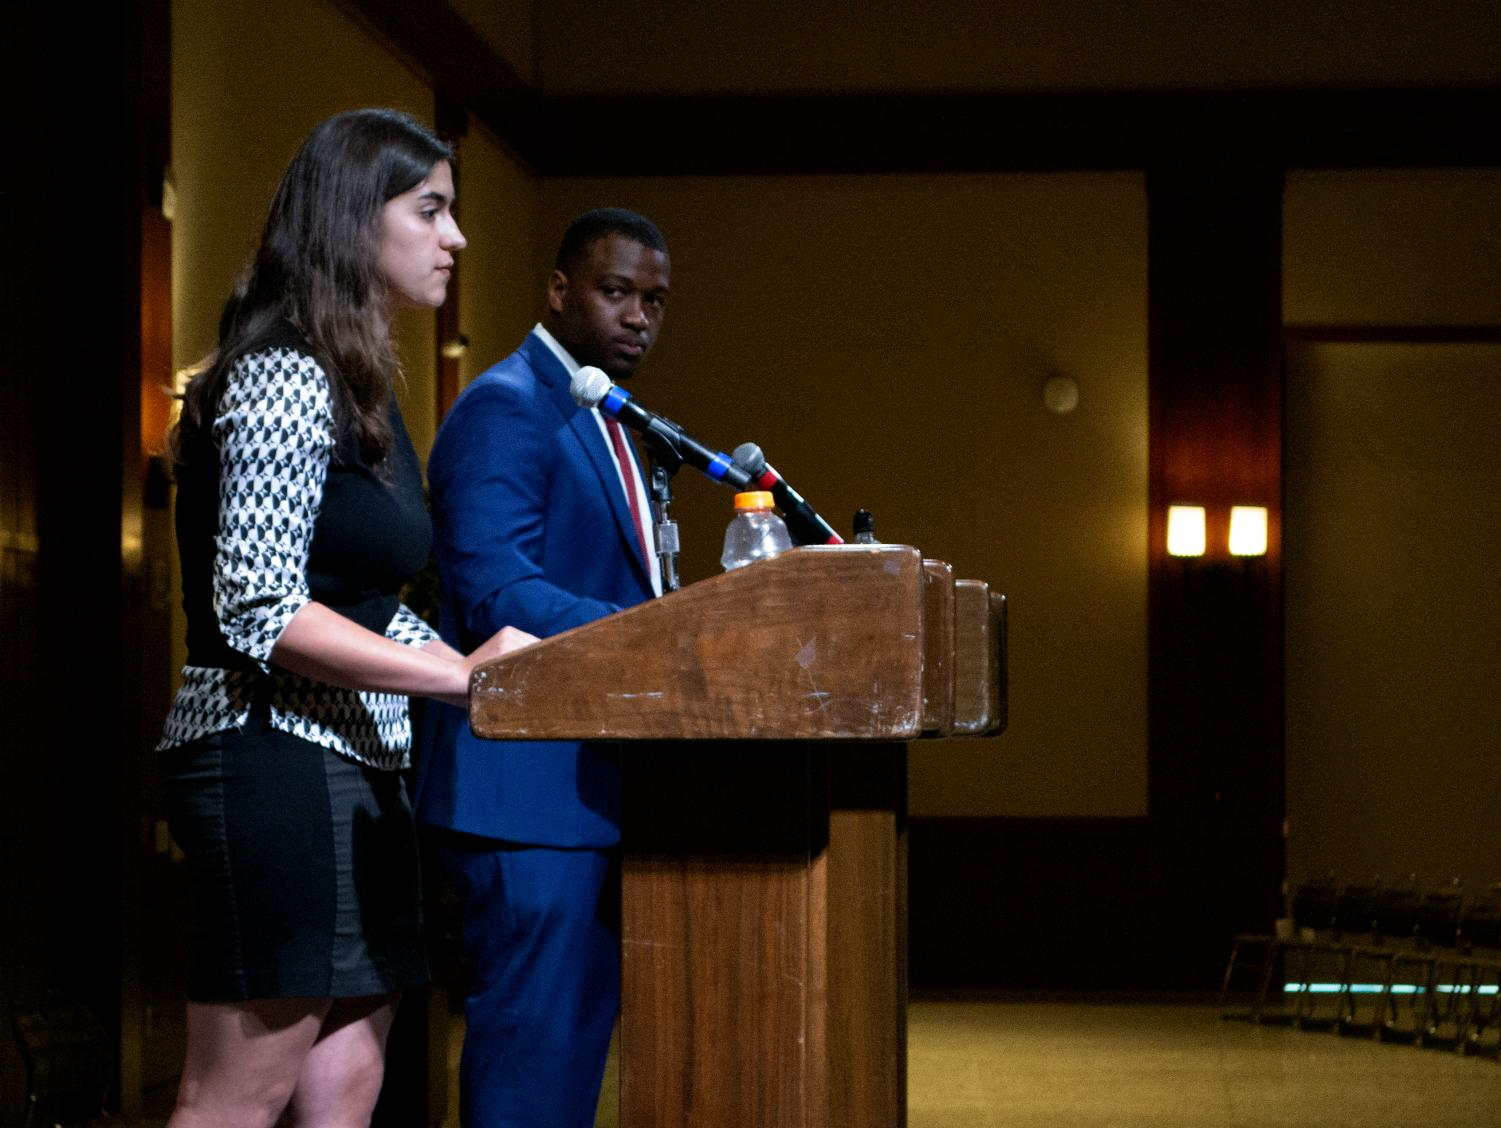 Presidential candidates Mariya Nadberezhna and Christian Onwuka debate in Montezuma Hall on Wednesday, March 20. The debates were moved out of the Conrad Prebys Aztec Student Union due to inclement weather.